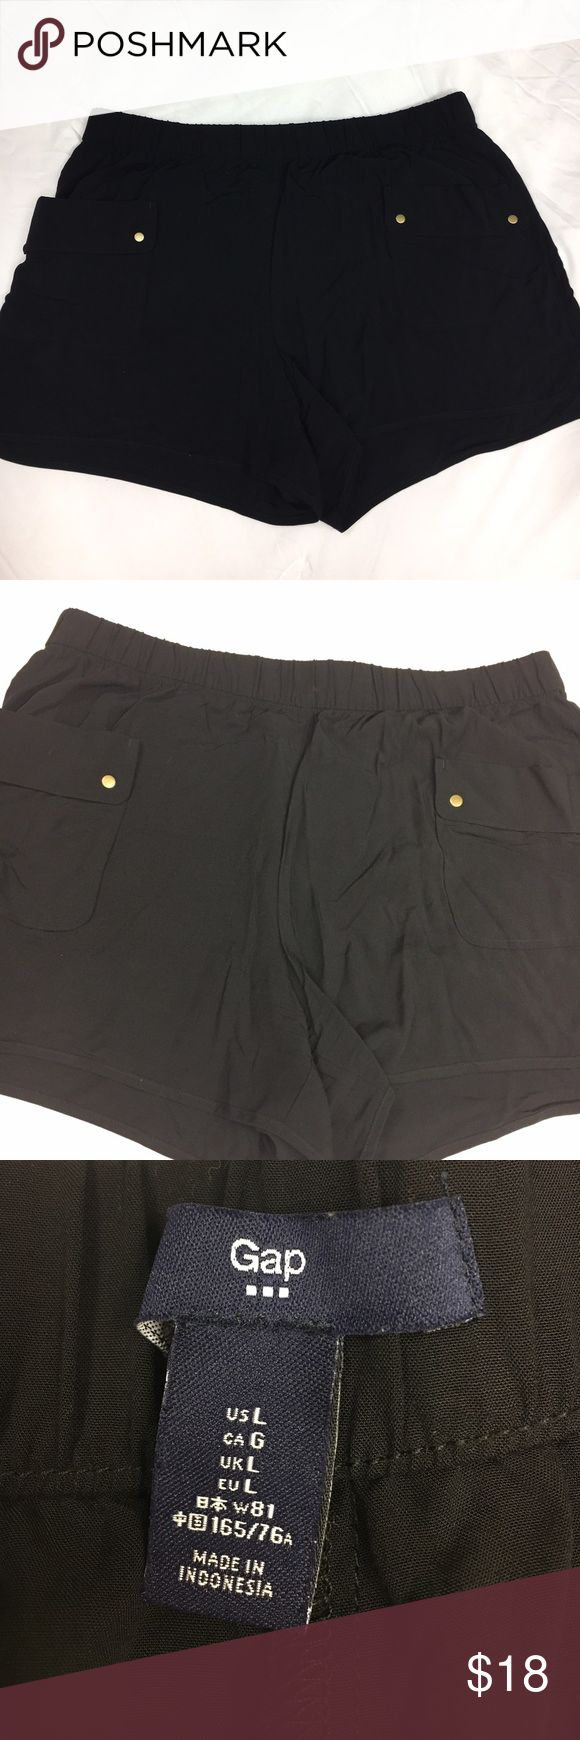 GAP Outlet black size Large dressy casual shorts Good condition GAP Outlet black casual yet classy shorts. Front pockets with cute round metal accents, elastic waist at 34inches, and 3inch inseam. Comfy and cute!! Size Large or like an 8-10 Gap Outlet Shorts Jean Shorts